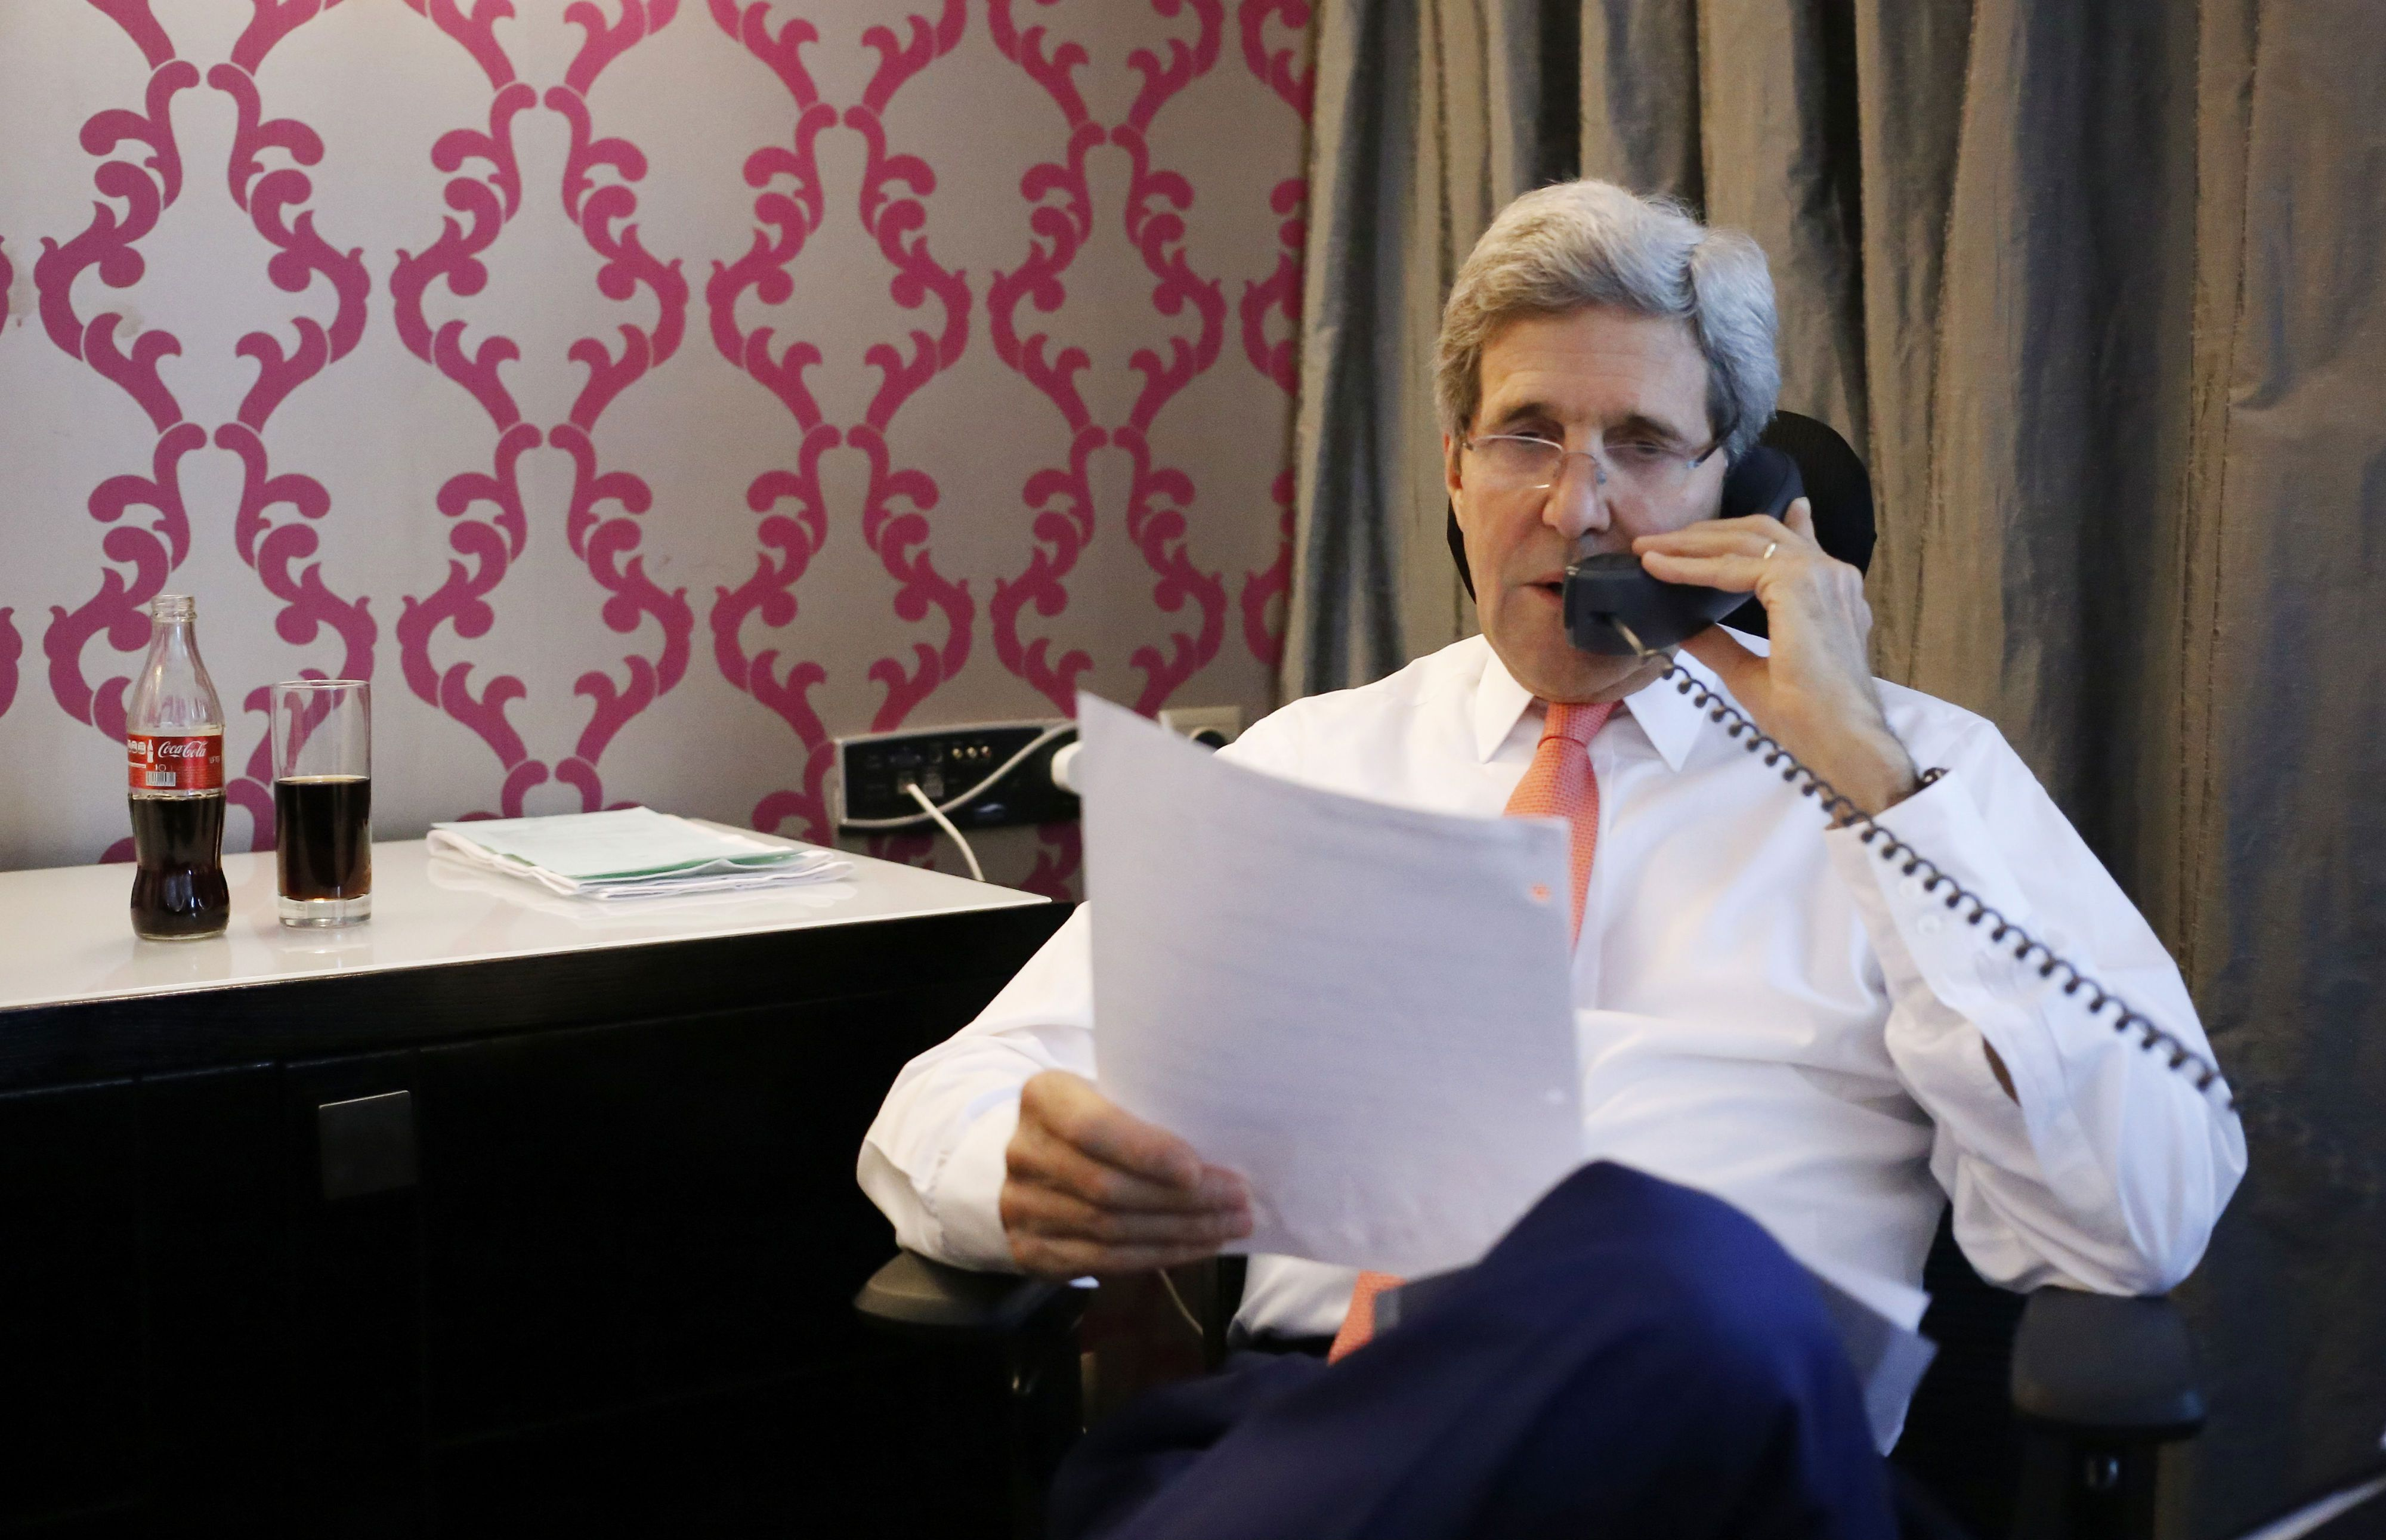 U.S. Secretary of State John Kerry talks to Israeli Prime Minister Benjamin Netanyahu about terms of a cease-fire in fighting in Gaza between Israel and Hamas, Friday, July 25, 2014, from his hotel suite in Cairo, Egypt. (AP Photo/Charles Dharapak)